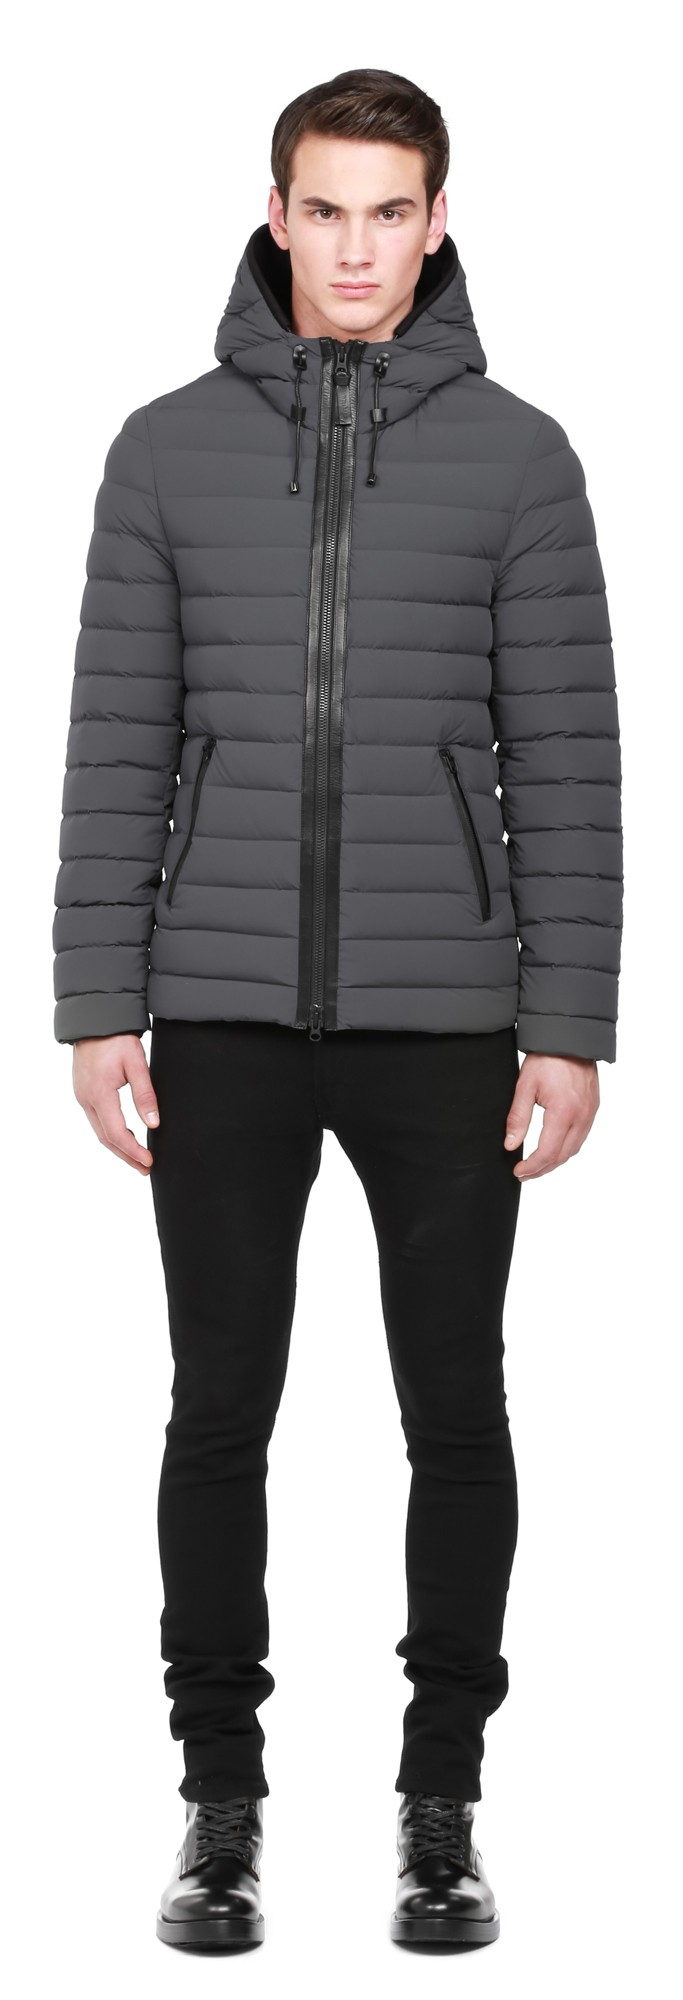 Charcoal Lux Light Weight Down Coat With Hood Mackage Men